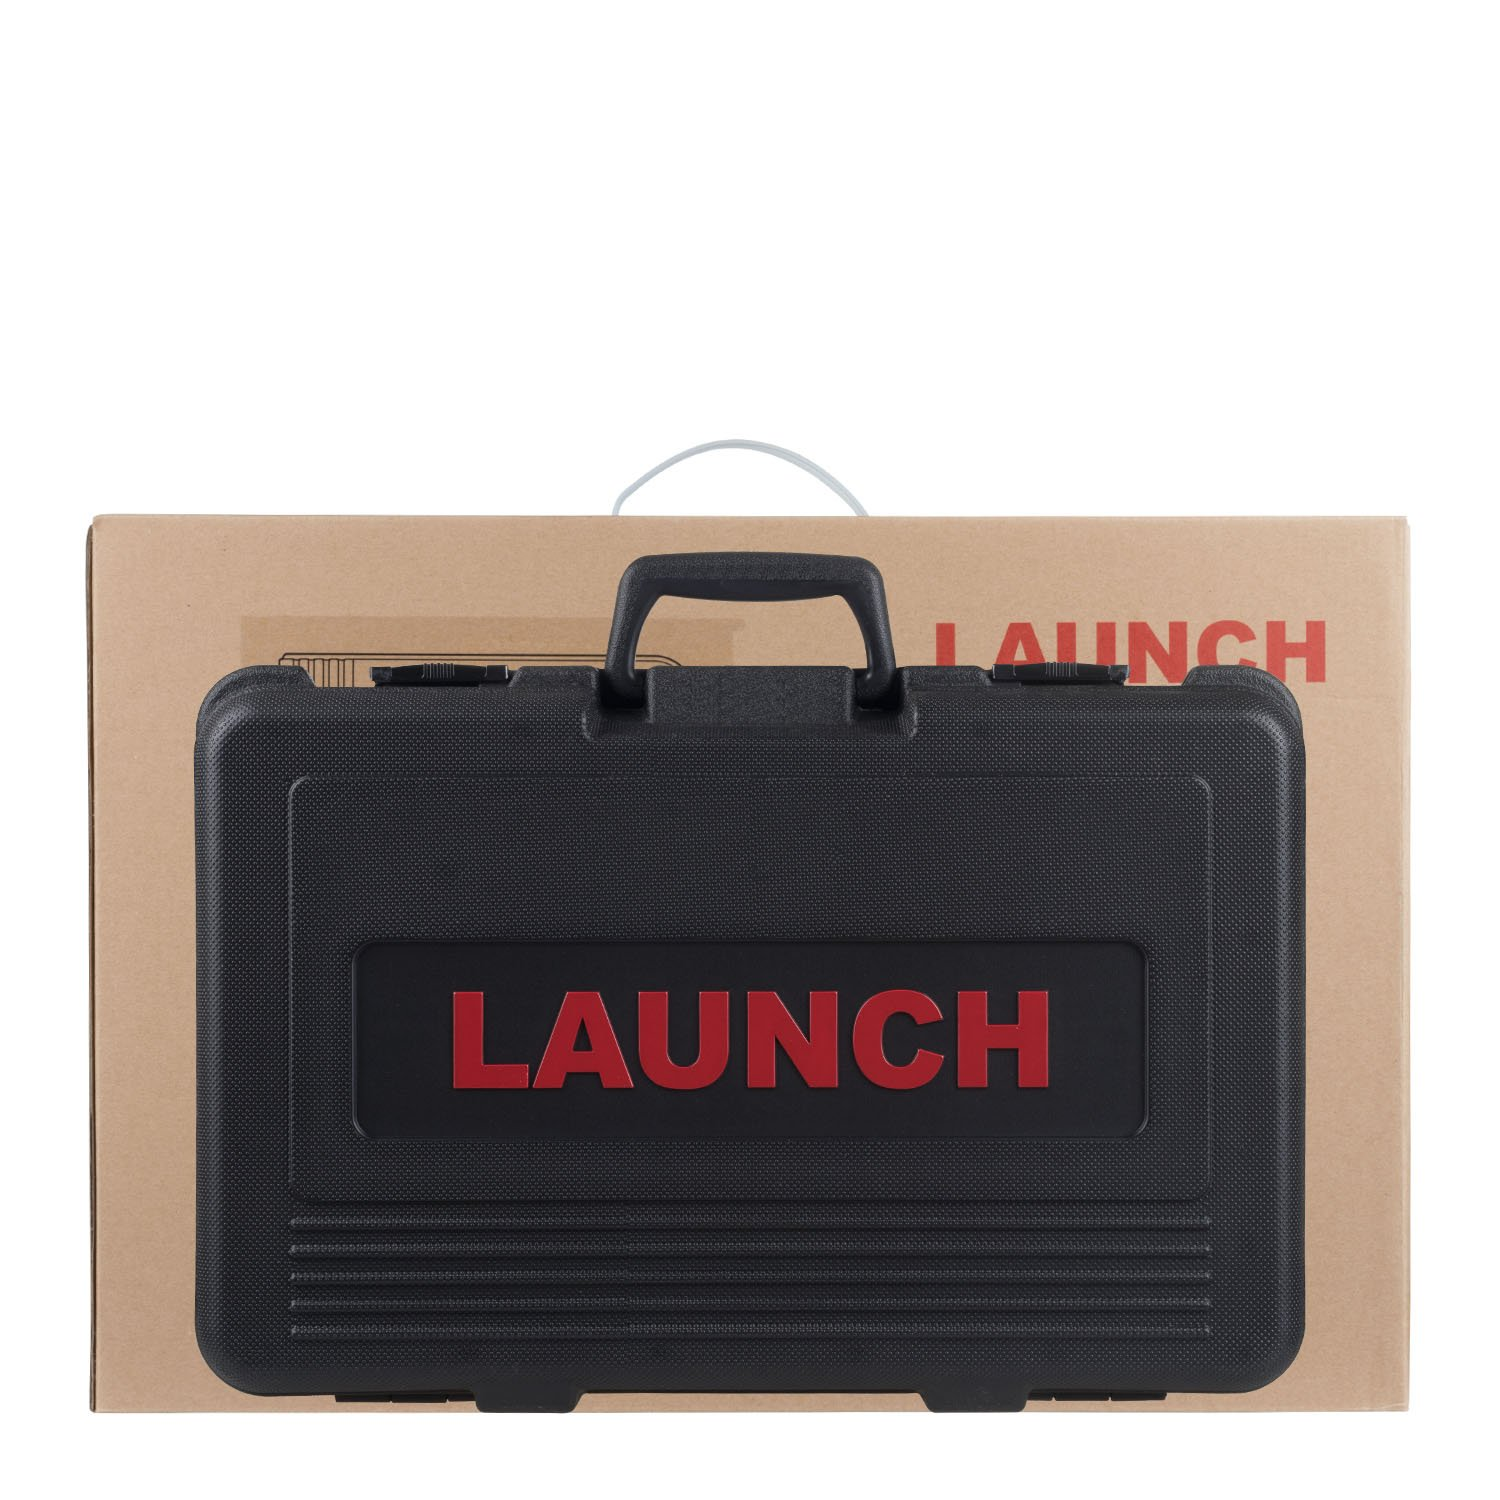 LAUNCH X431 V PRO Bi-Directional OBD2 Scan Tool Actuation Test,ECU Coding,Key Programming, Reset Functions,One-Key Generate Vehicle Health Report,Live Data Graphing-Free Update by LAUNCH (Image #7)